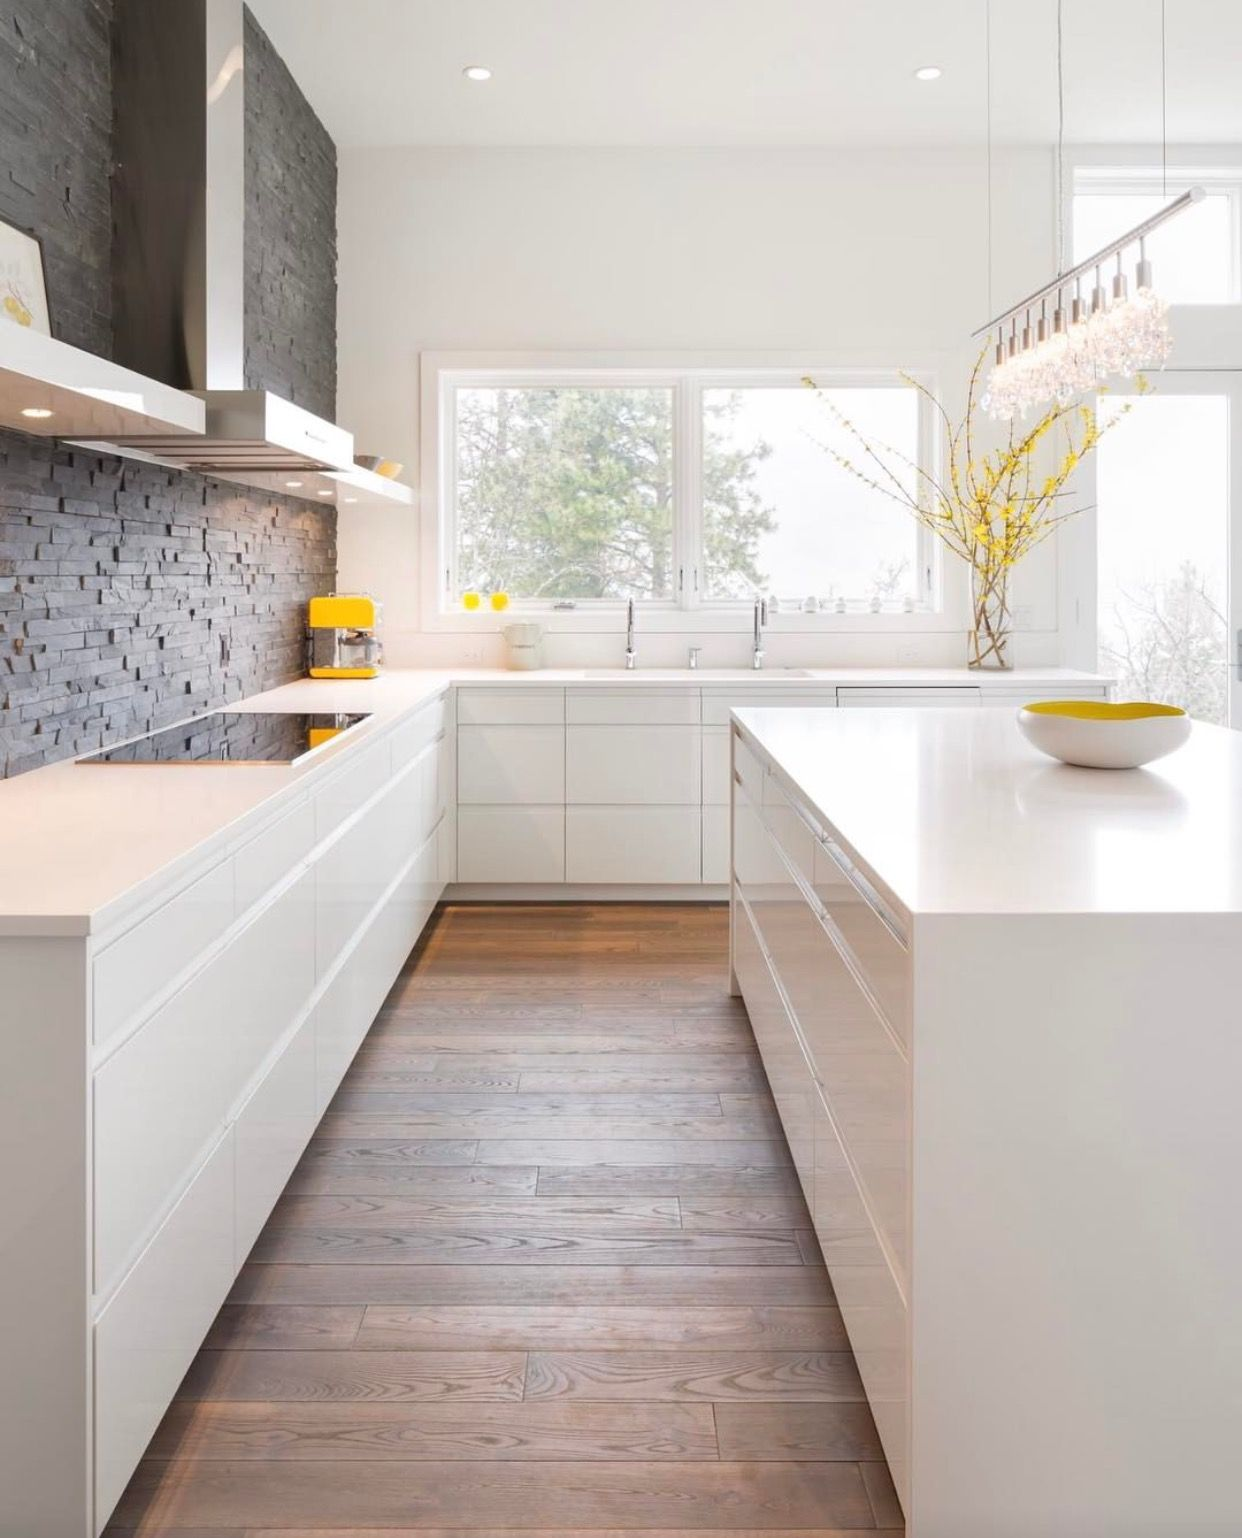 Simple moderna blanca | Kitchen | Pinterest | Moderno y Blanco